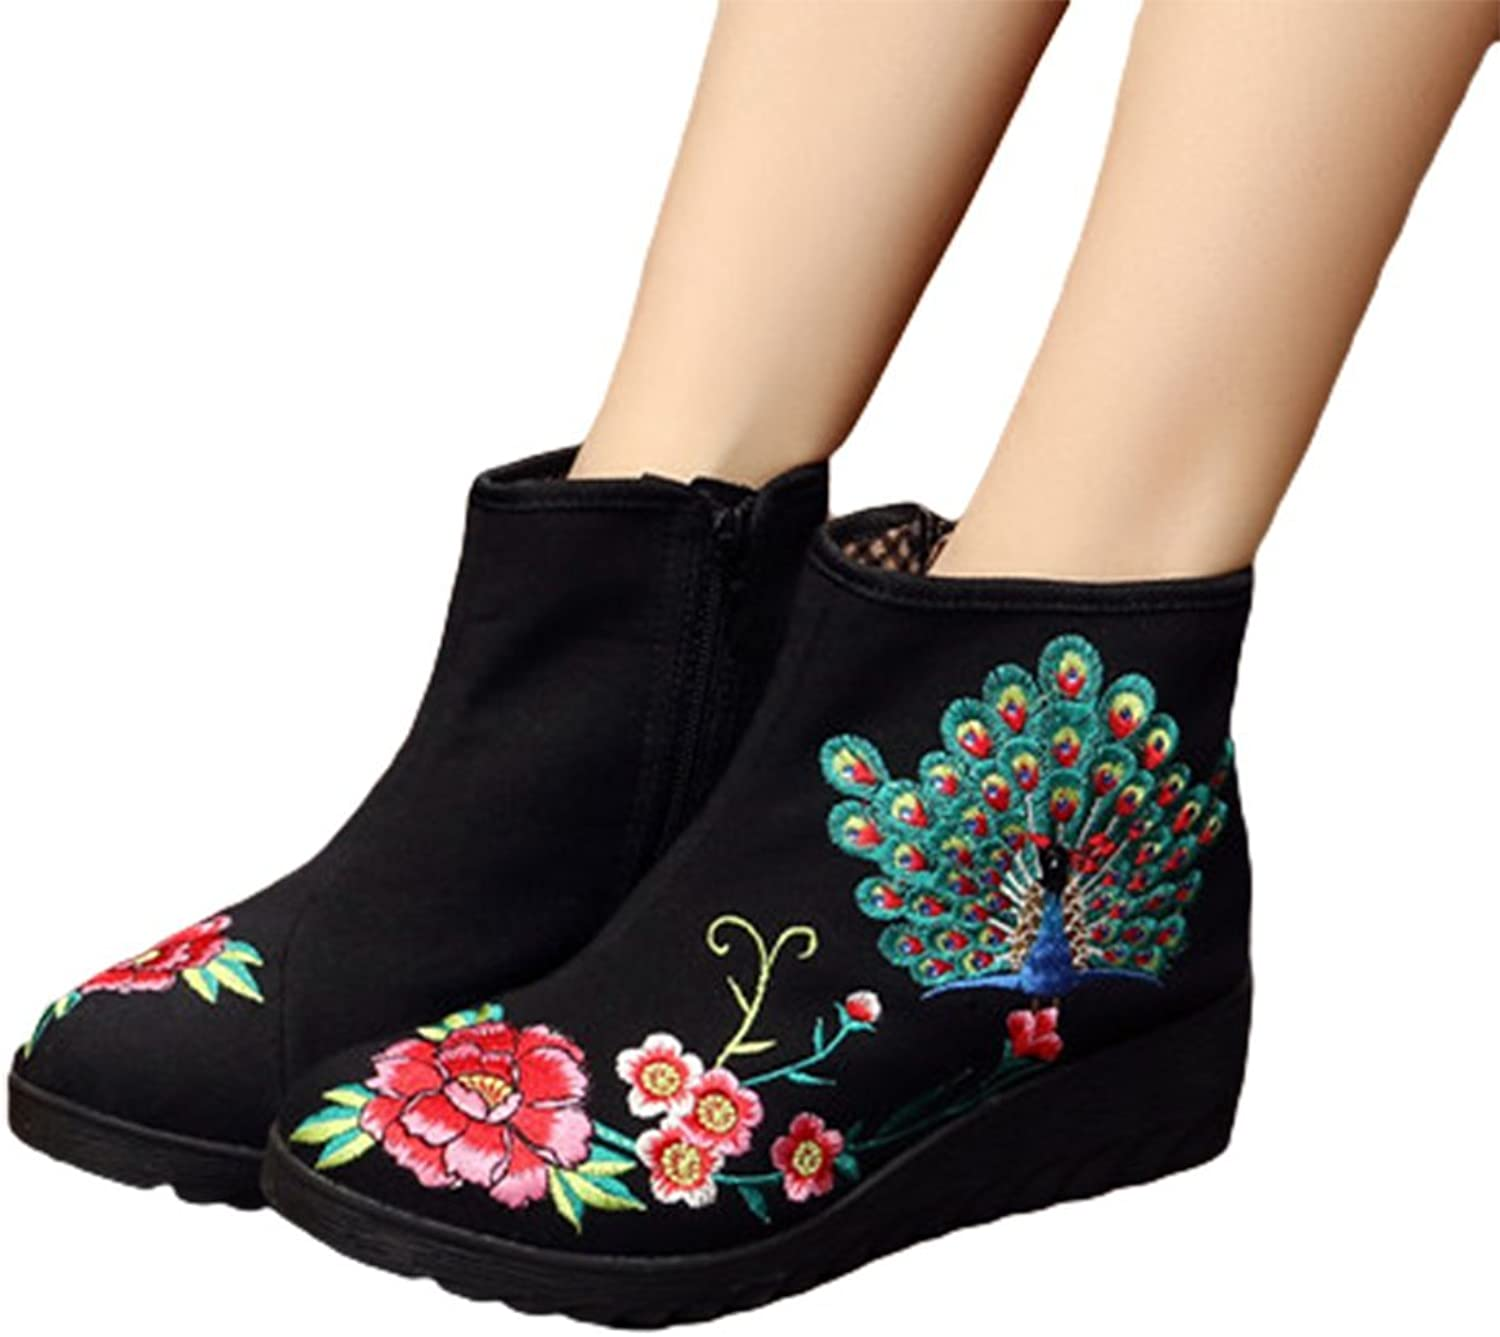 AvaCostume Womens Peacock Embroidery Wedge Heel Ankle Booties